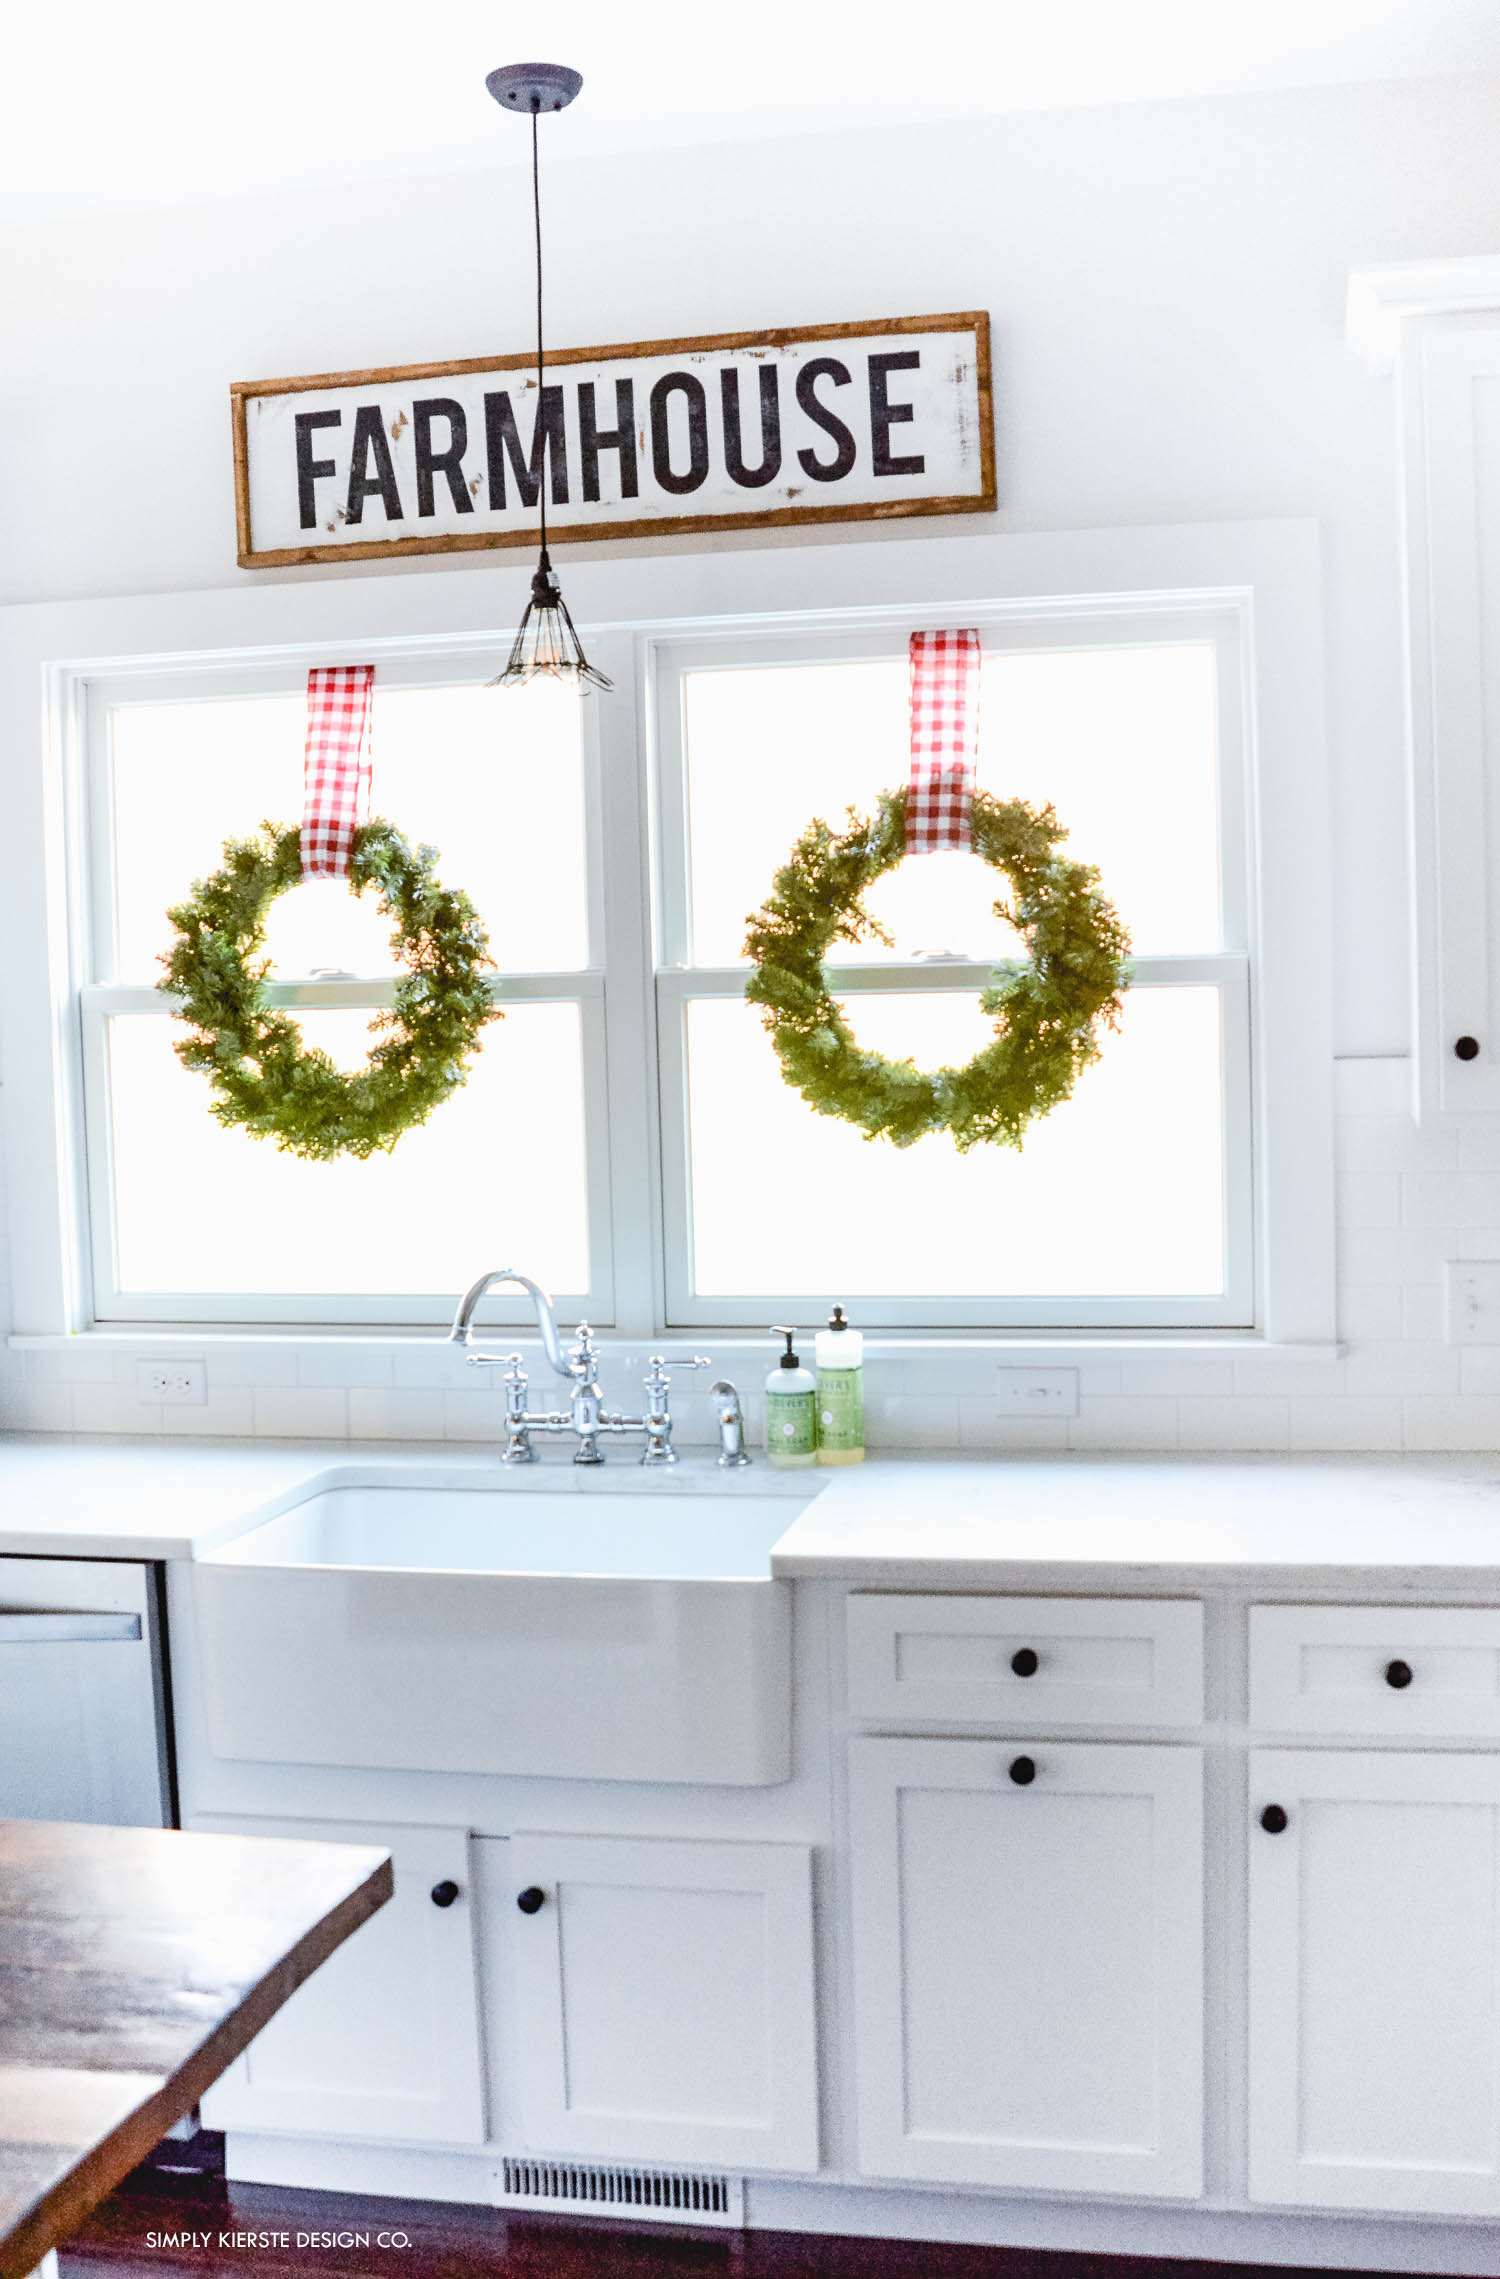 Old Salt Farm Christmas Home Tour 2017 - Simply Kierste Design Co.